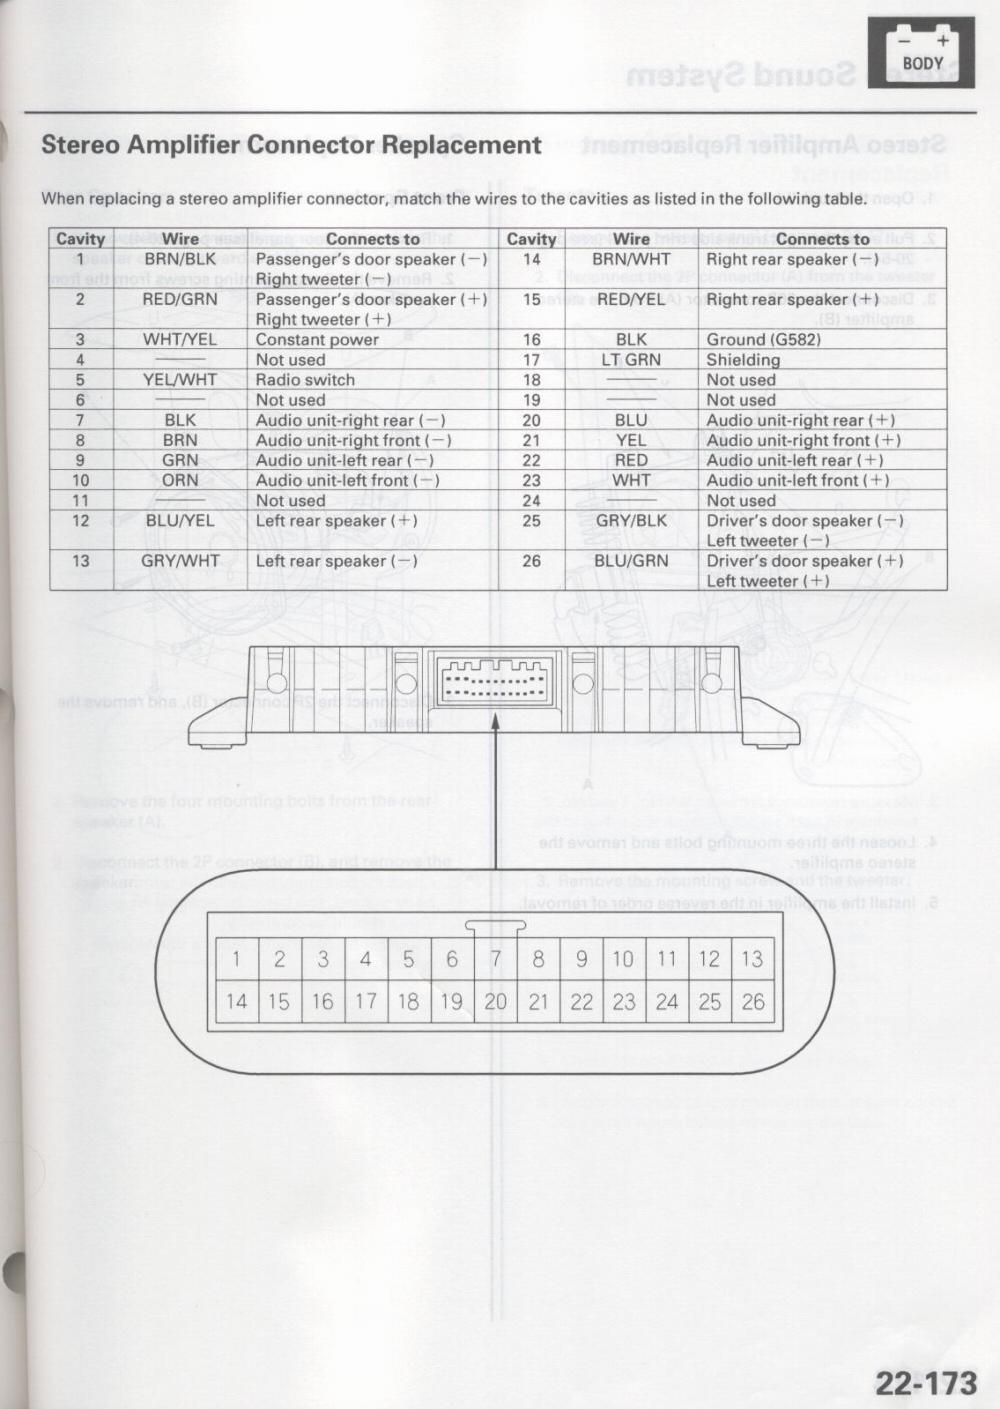 Acura 2002 TL car stereo amplifier wiring diagram harness car radio stereo audio wiring diagram autoradio connector wire 2012 chrysler 200 speaker wiring diagram at soozxer.org